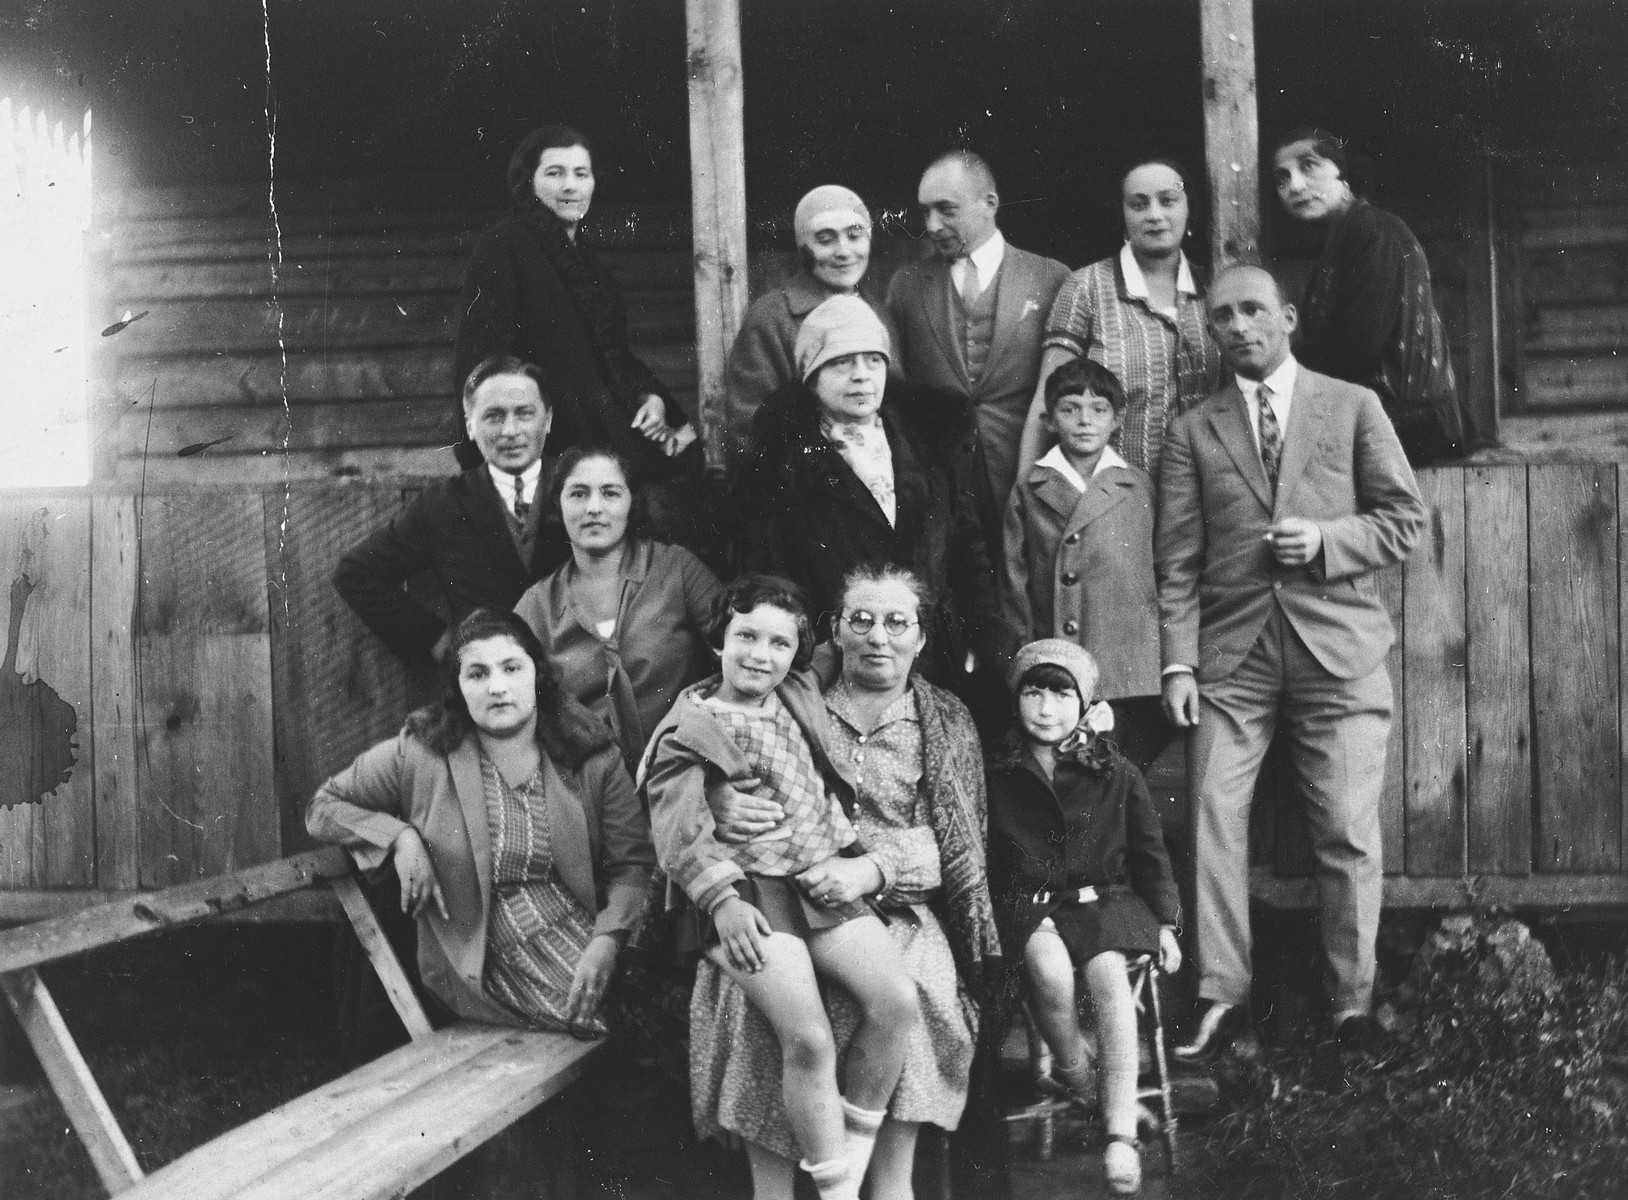 A Jewish family from Vilna gathers outside a wooden cottage for a group portrait while on vacation in Podbrodzie.  Pictured are the extended Zeldowicz family.  Emilia his sitting on the lap of her grandmother Sonja.